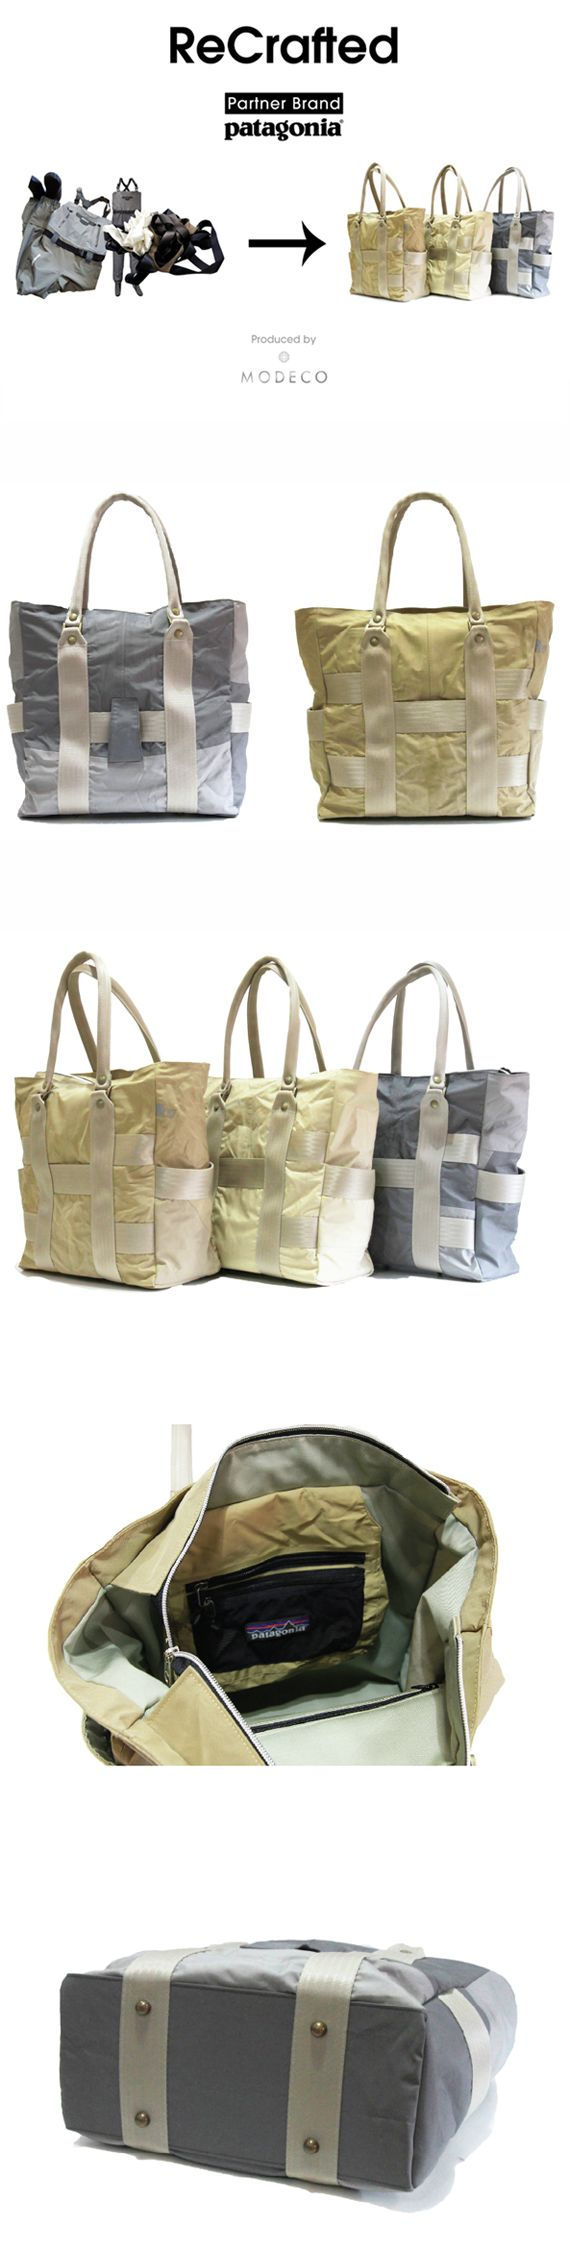 "MODECO released upcycling brand, ""ReCrafted""series in 2014. The first model is upcycled products made of used waders collected through the Common Threads Partnership Program conducted by an American outdoor brand, Patagonia Japan as the first partner brand."